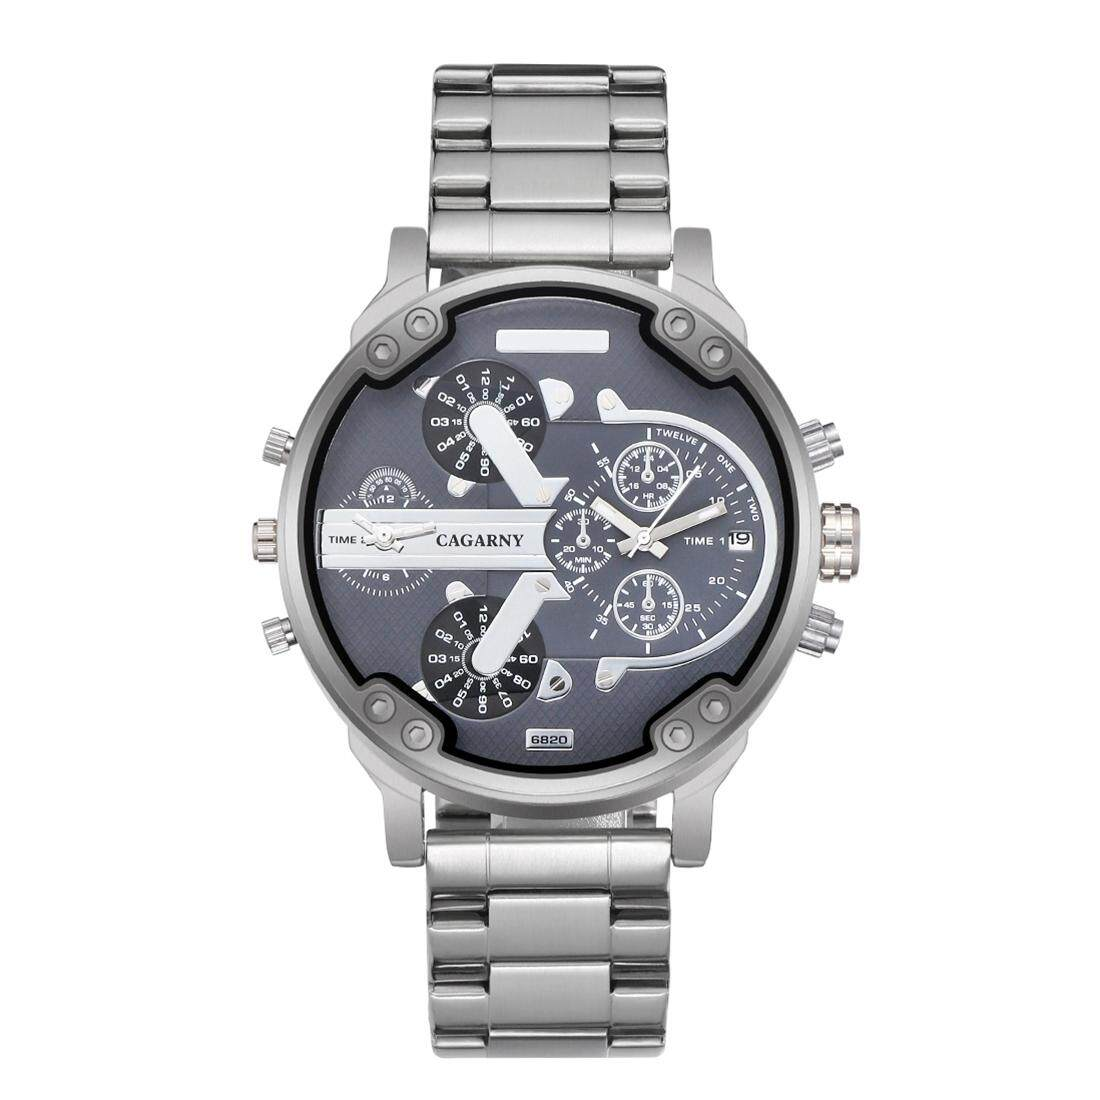 CAGARNY 6820 Fashionable Business Style Large Dial Dual Time Zone Quartz Movement Wrist Watch with Stainless Steel Band and Calendar Function for Men(Silver Band Grey Window) Malaysia